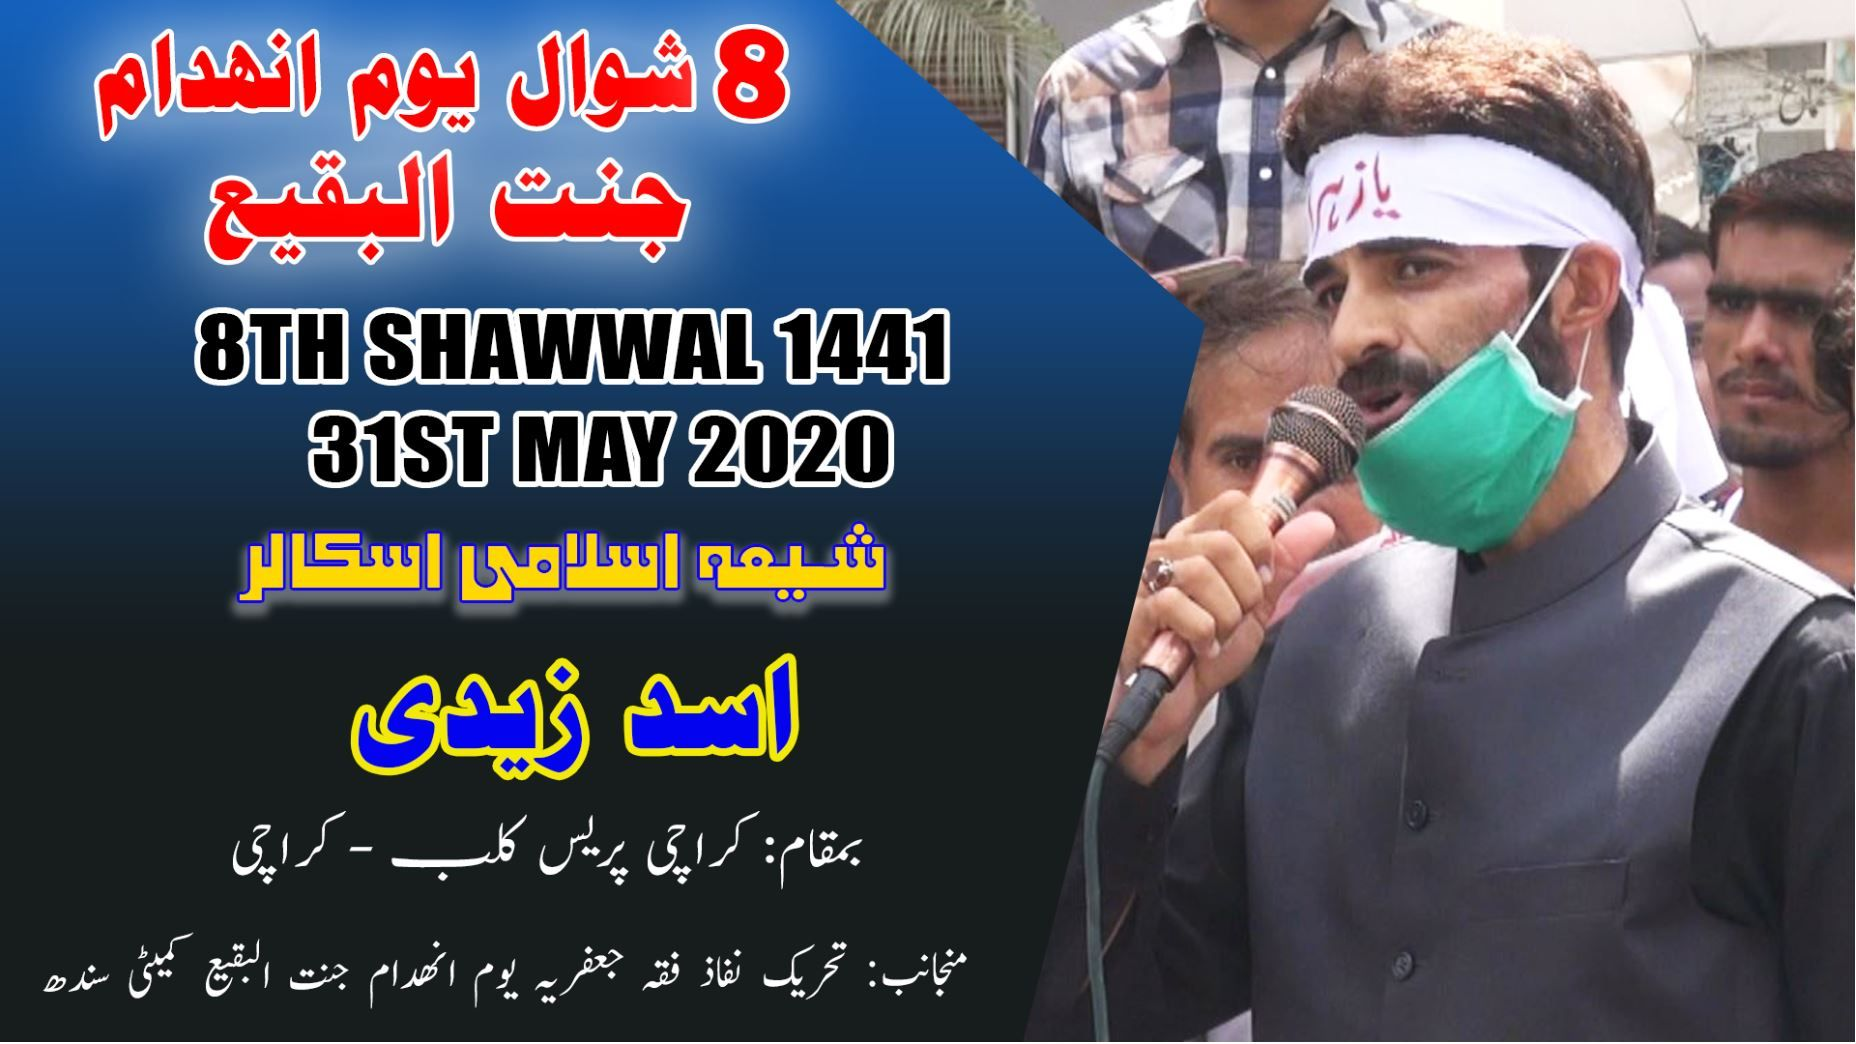 Speaker | Asad Zaidi | Youm-e-Jannat-ul-Baqee - 08 Shawwal 2020 - Press Club - Karachi, Pakistan